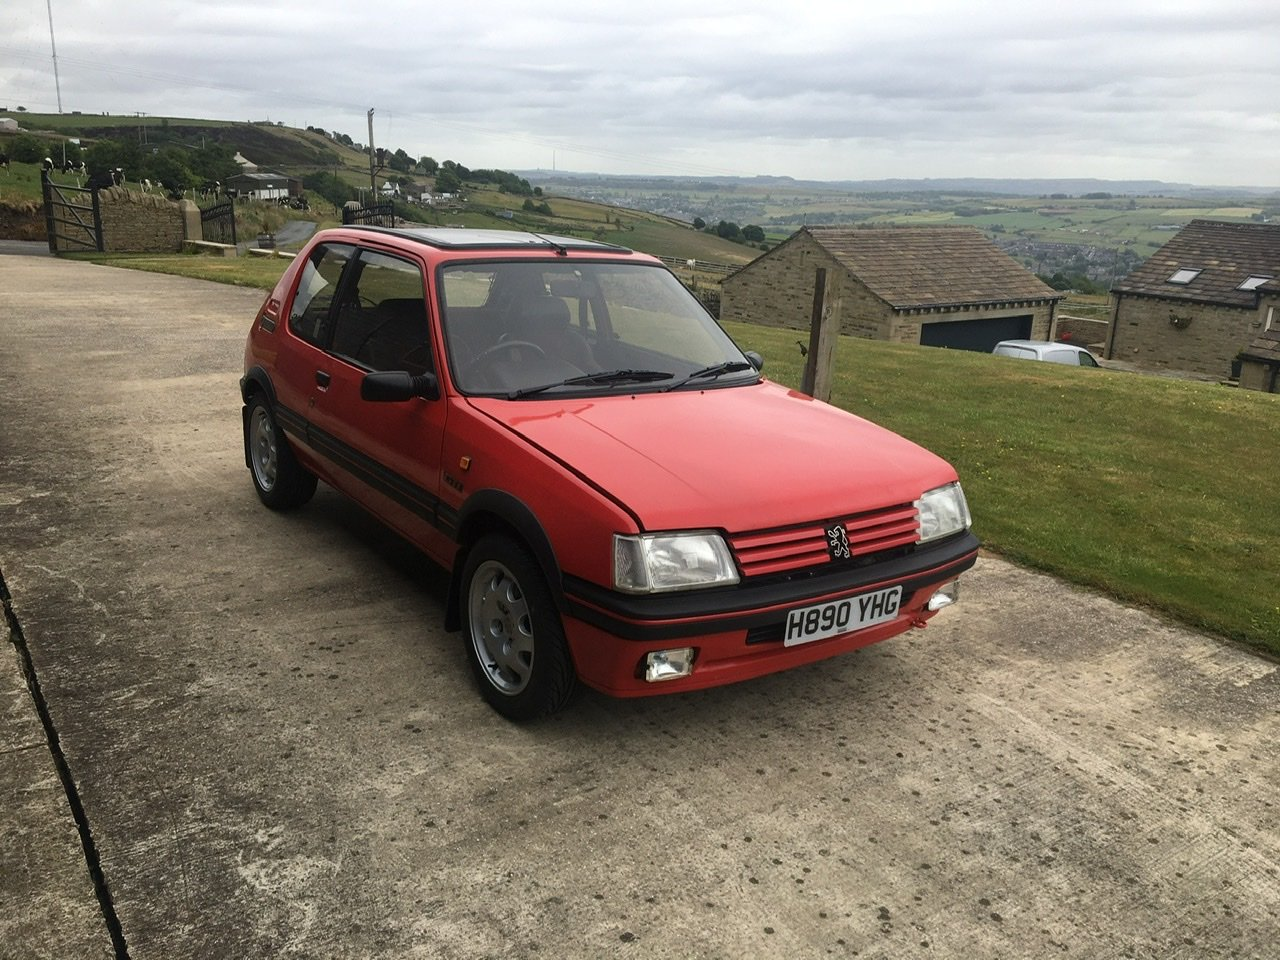 1991 Peugeot 205gti 1.9 SOLD (picture 3 of 6)